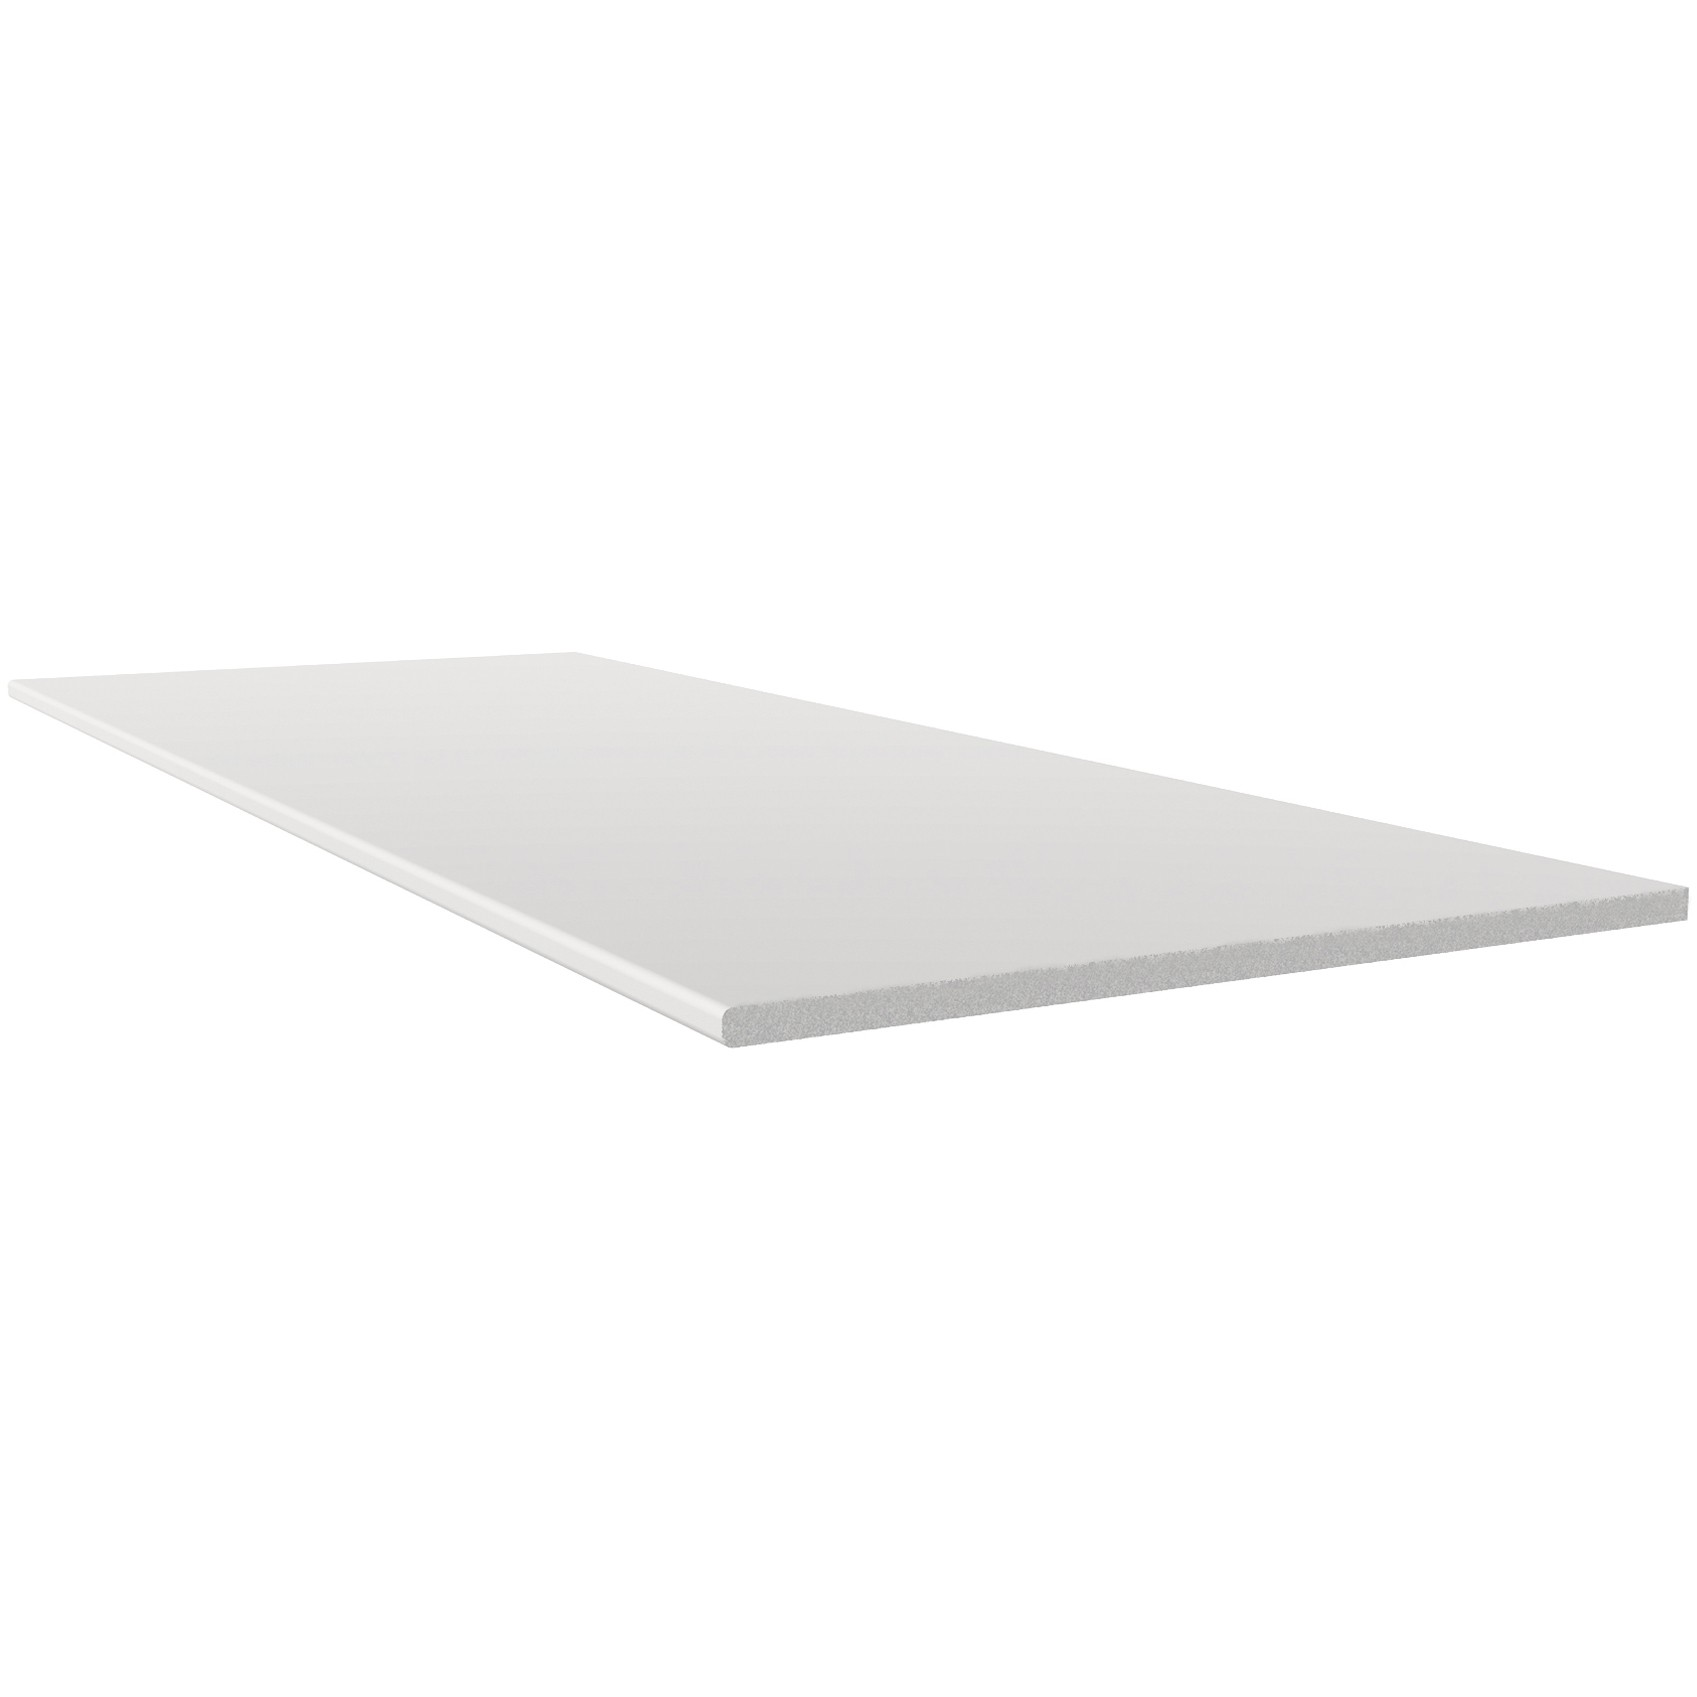 Freefoam 10mm Solid Soffit Board - White, 200mm, 2.5 metre